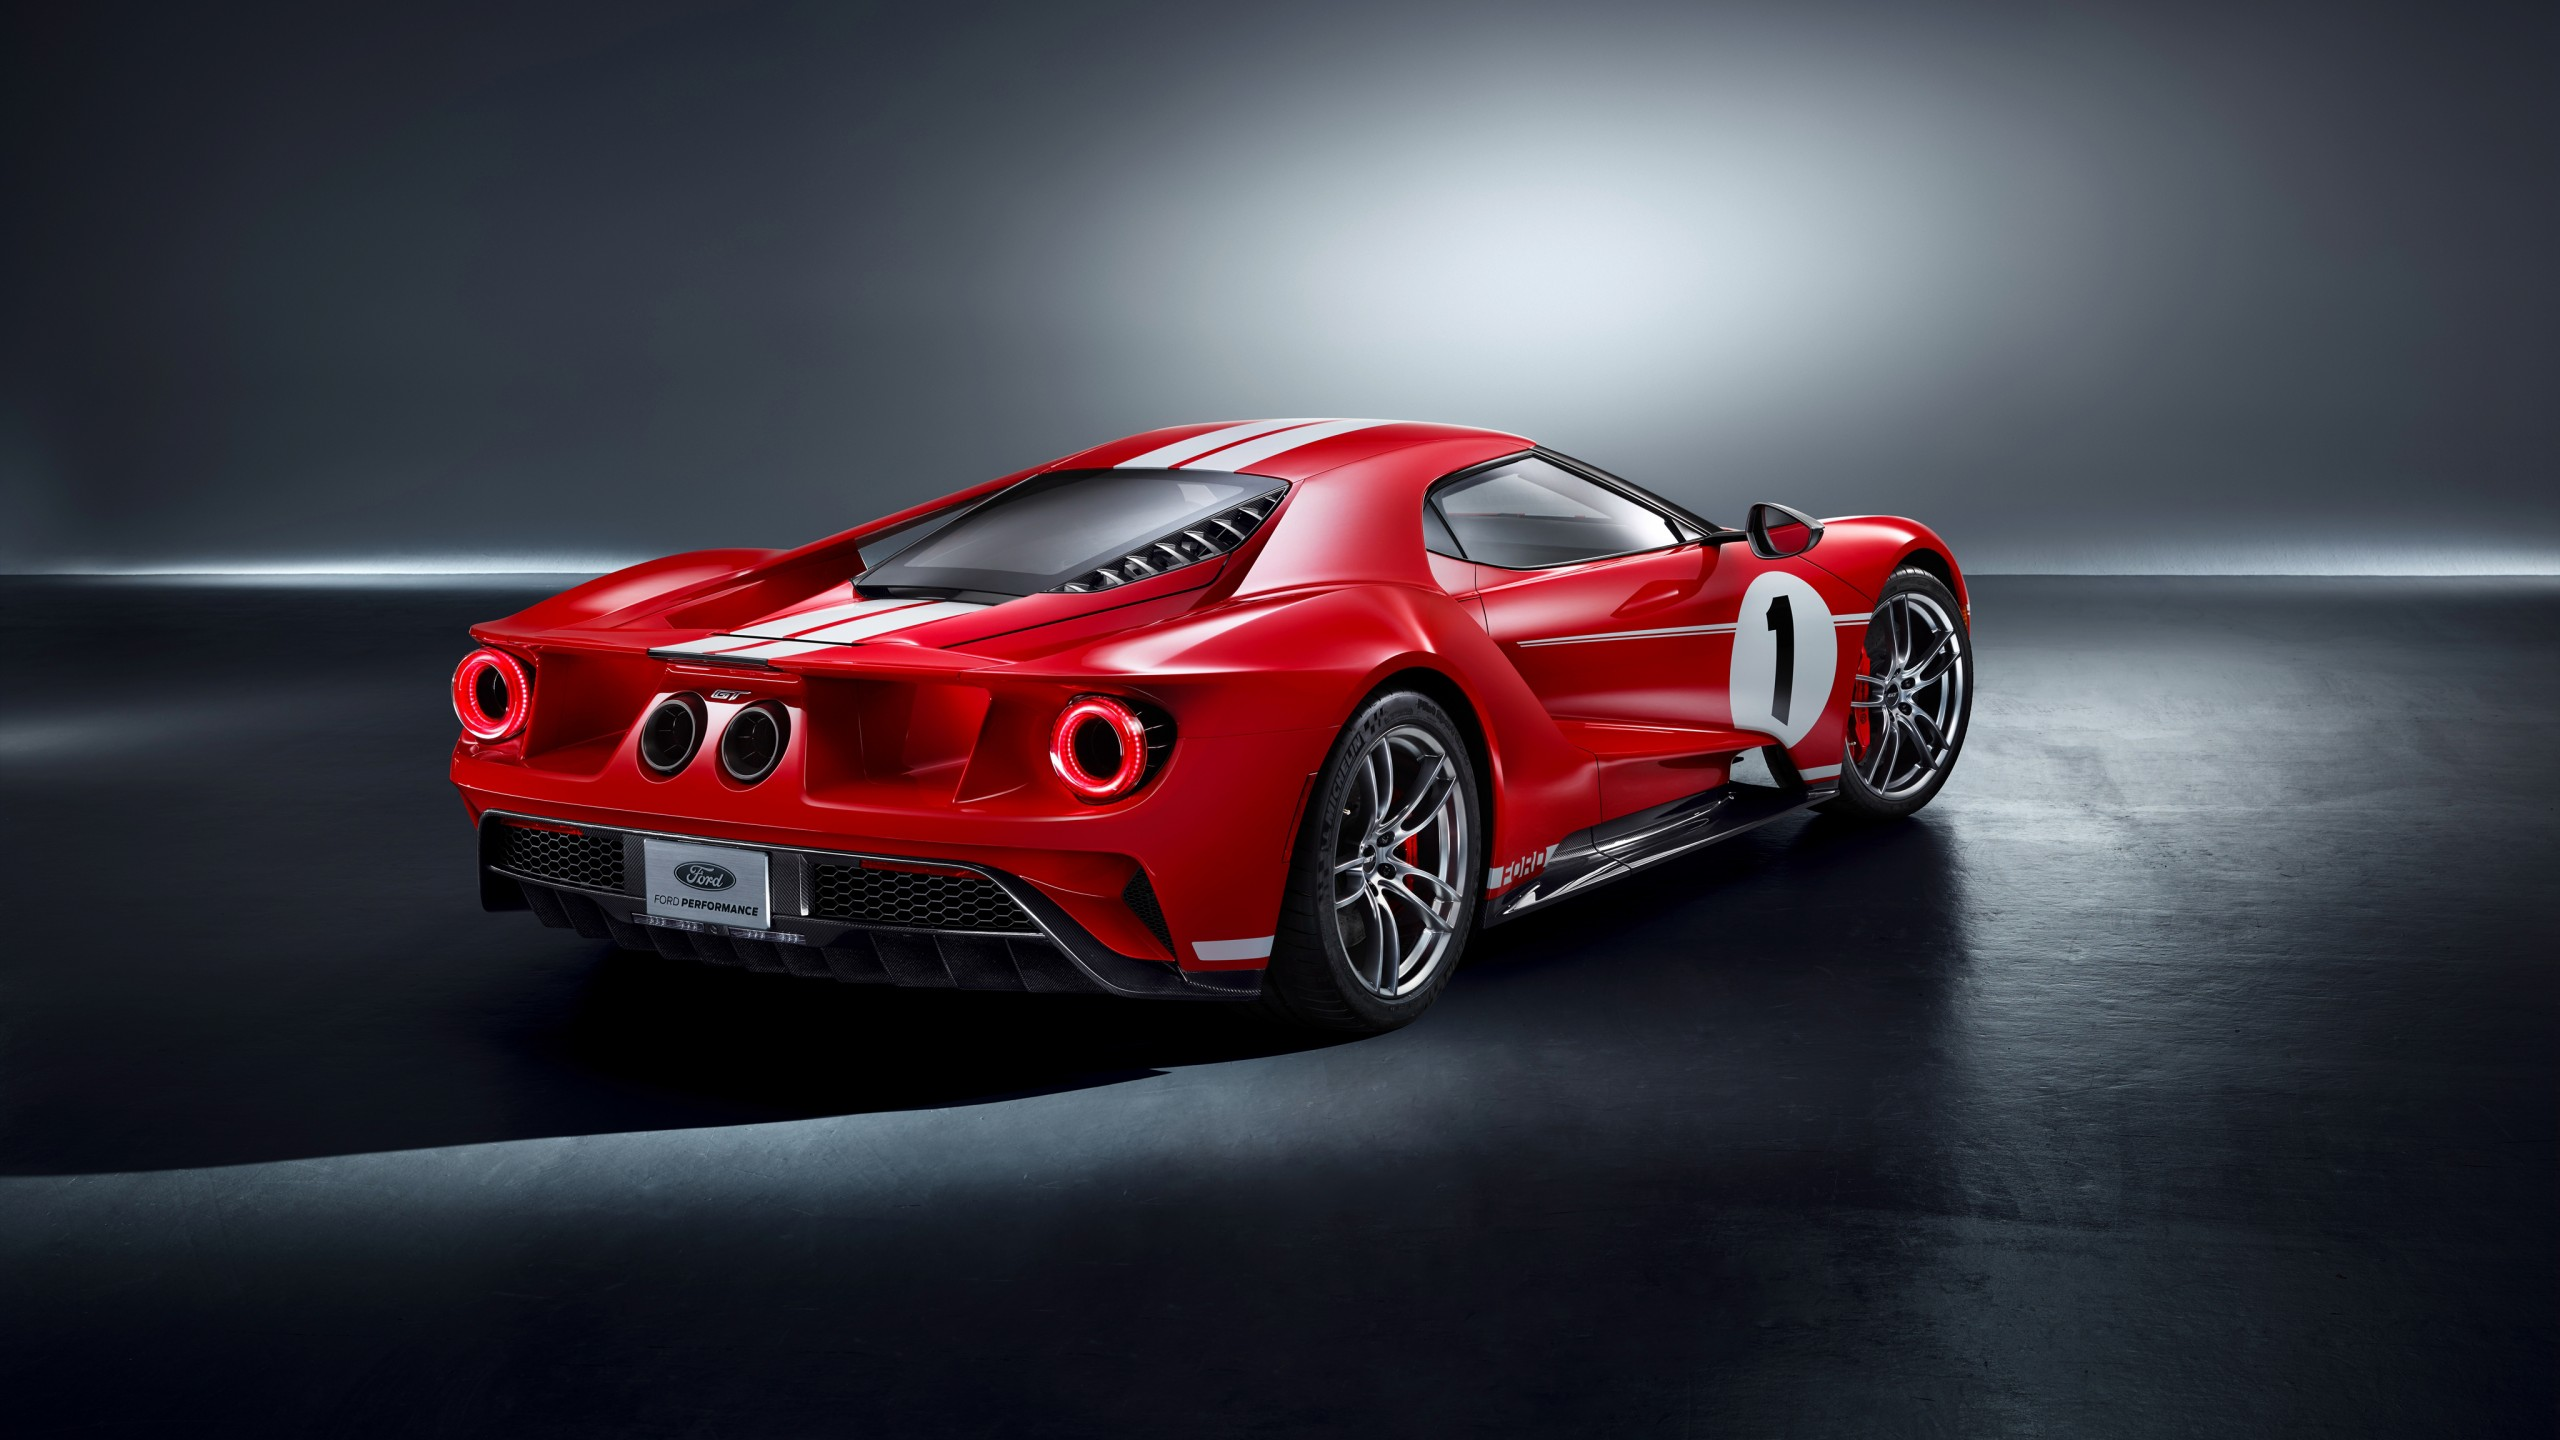 2018 Ford Gt 67 Heritage Edition 4k 2 Wallpaper Hd Car Wallpapers Id 8622